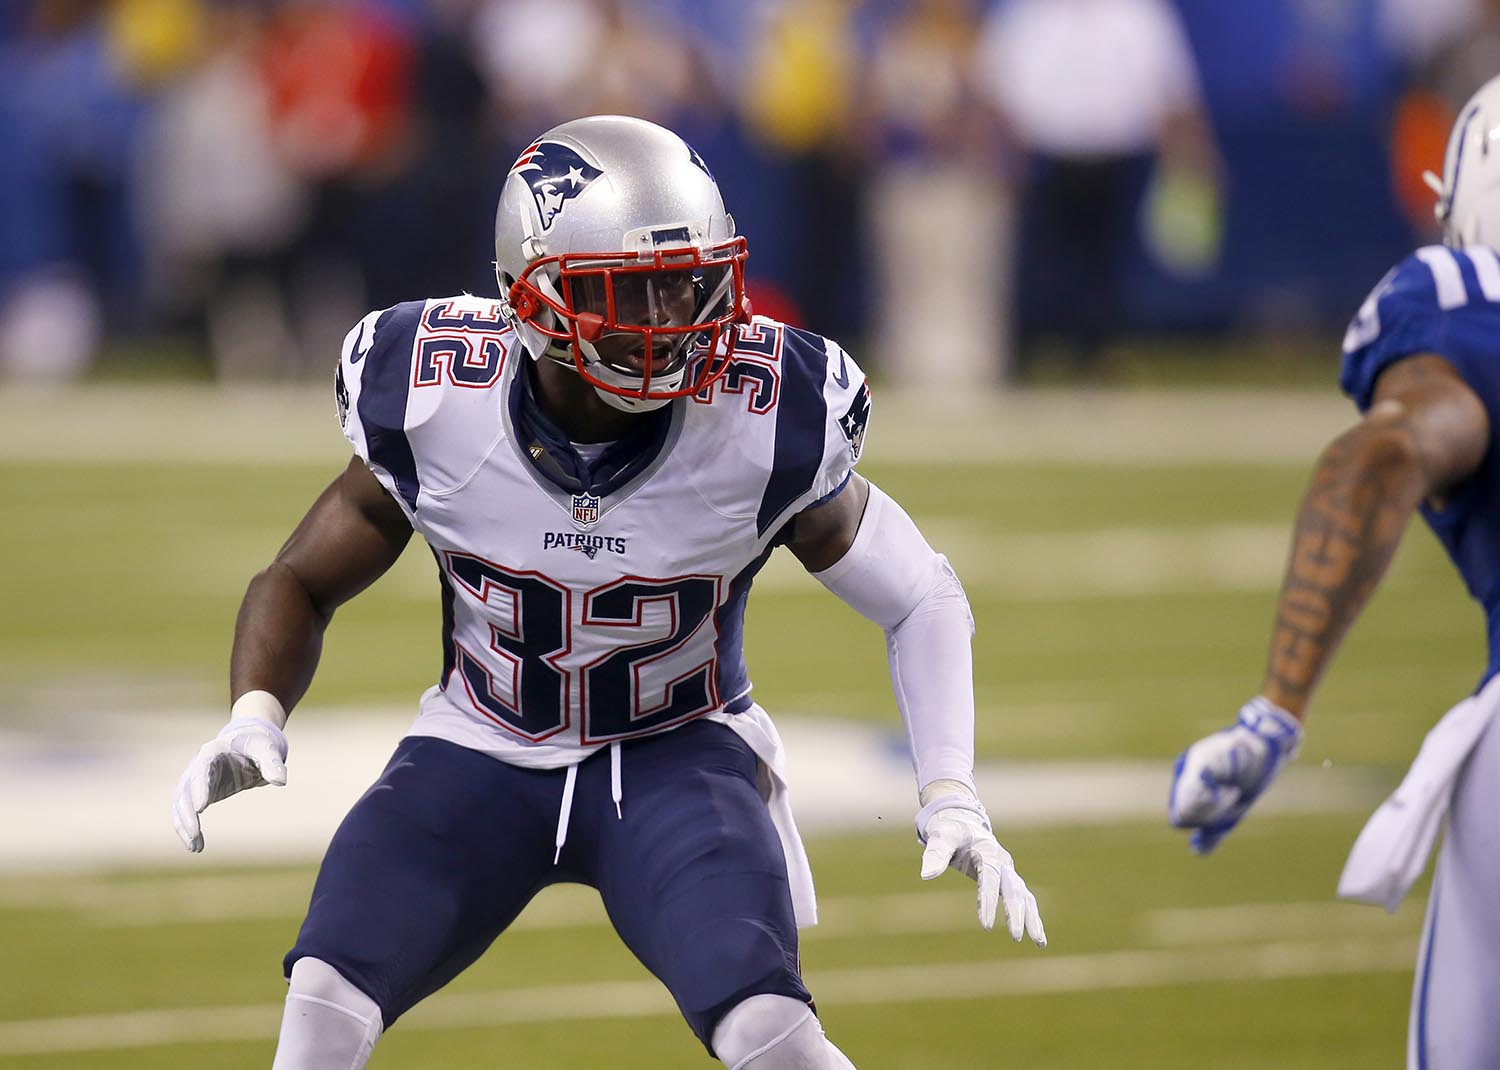 "<div class=""meta image-caption""><div class=""origin-logo origin-image ap""><span>AP</span></div><span class=""caption-text"">New England Patriots' free safety Devin McCourty is a native of Nyack, NY and also attended Rutgers University in New Brunswick, NJ. (Jeff Haynes/AP Images for Panini)</span></div>"